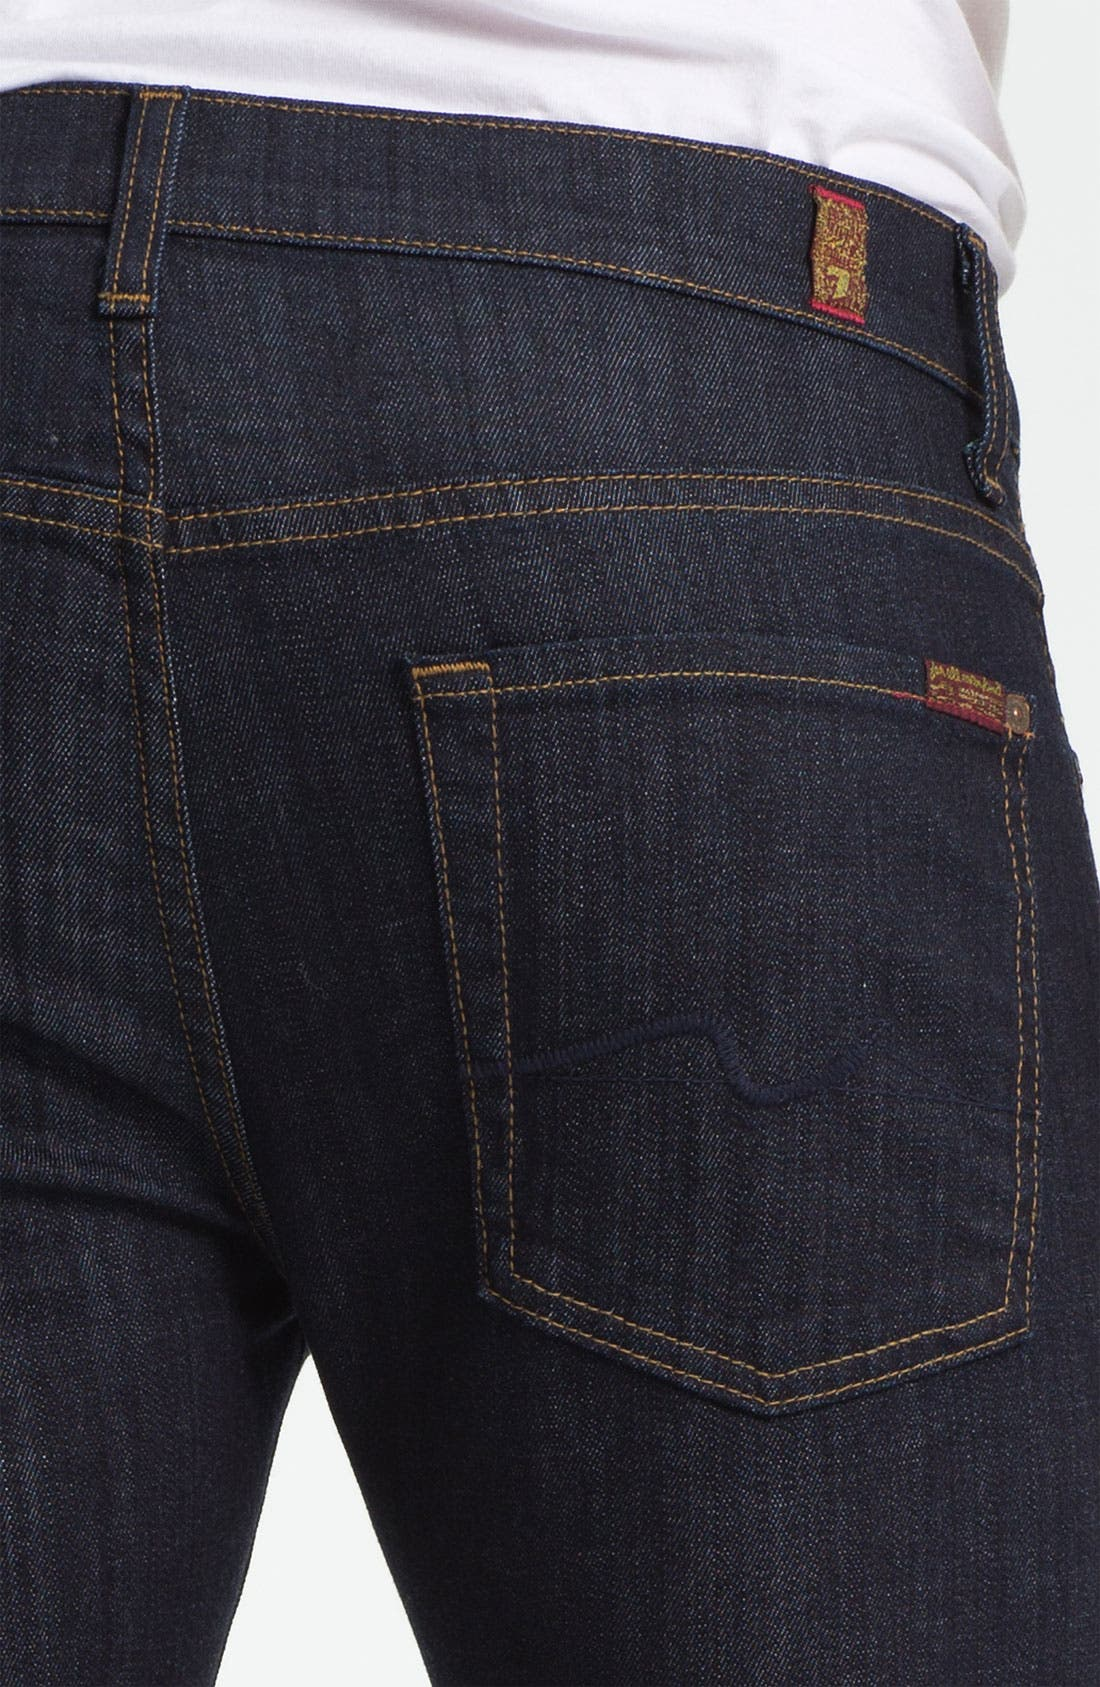 'Paxtyn' Skinny Fit Jeans,                             Alternate thumbnail 3, color,                             400